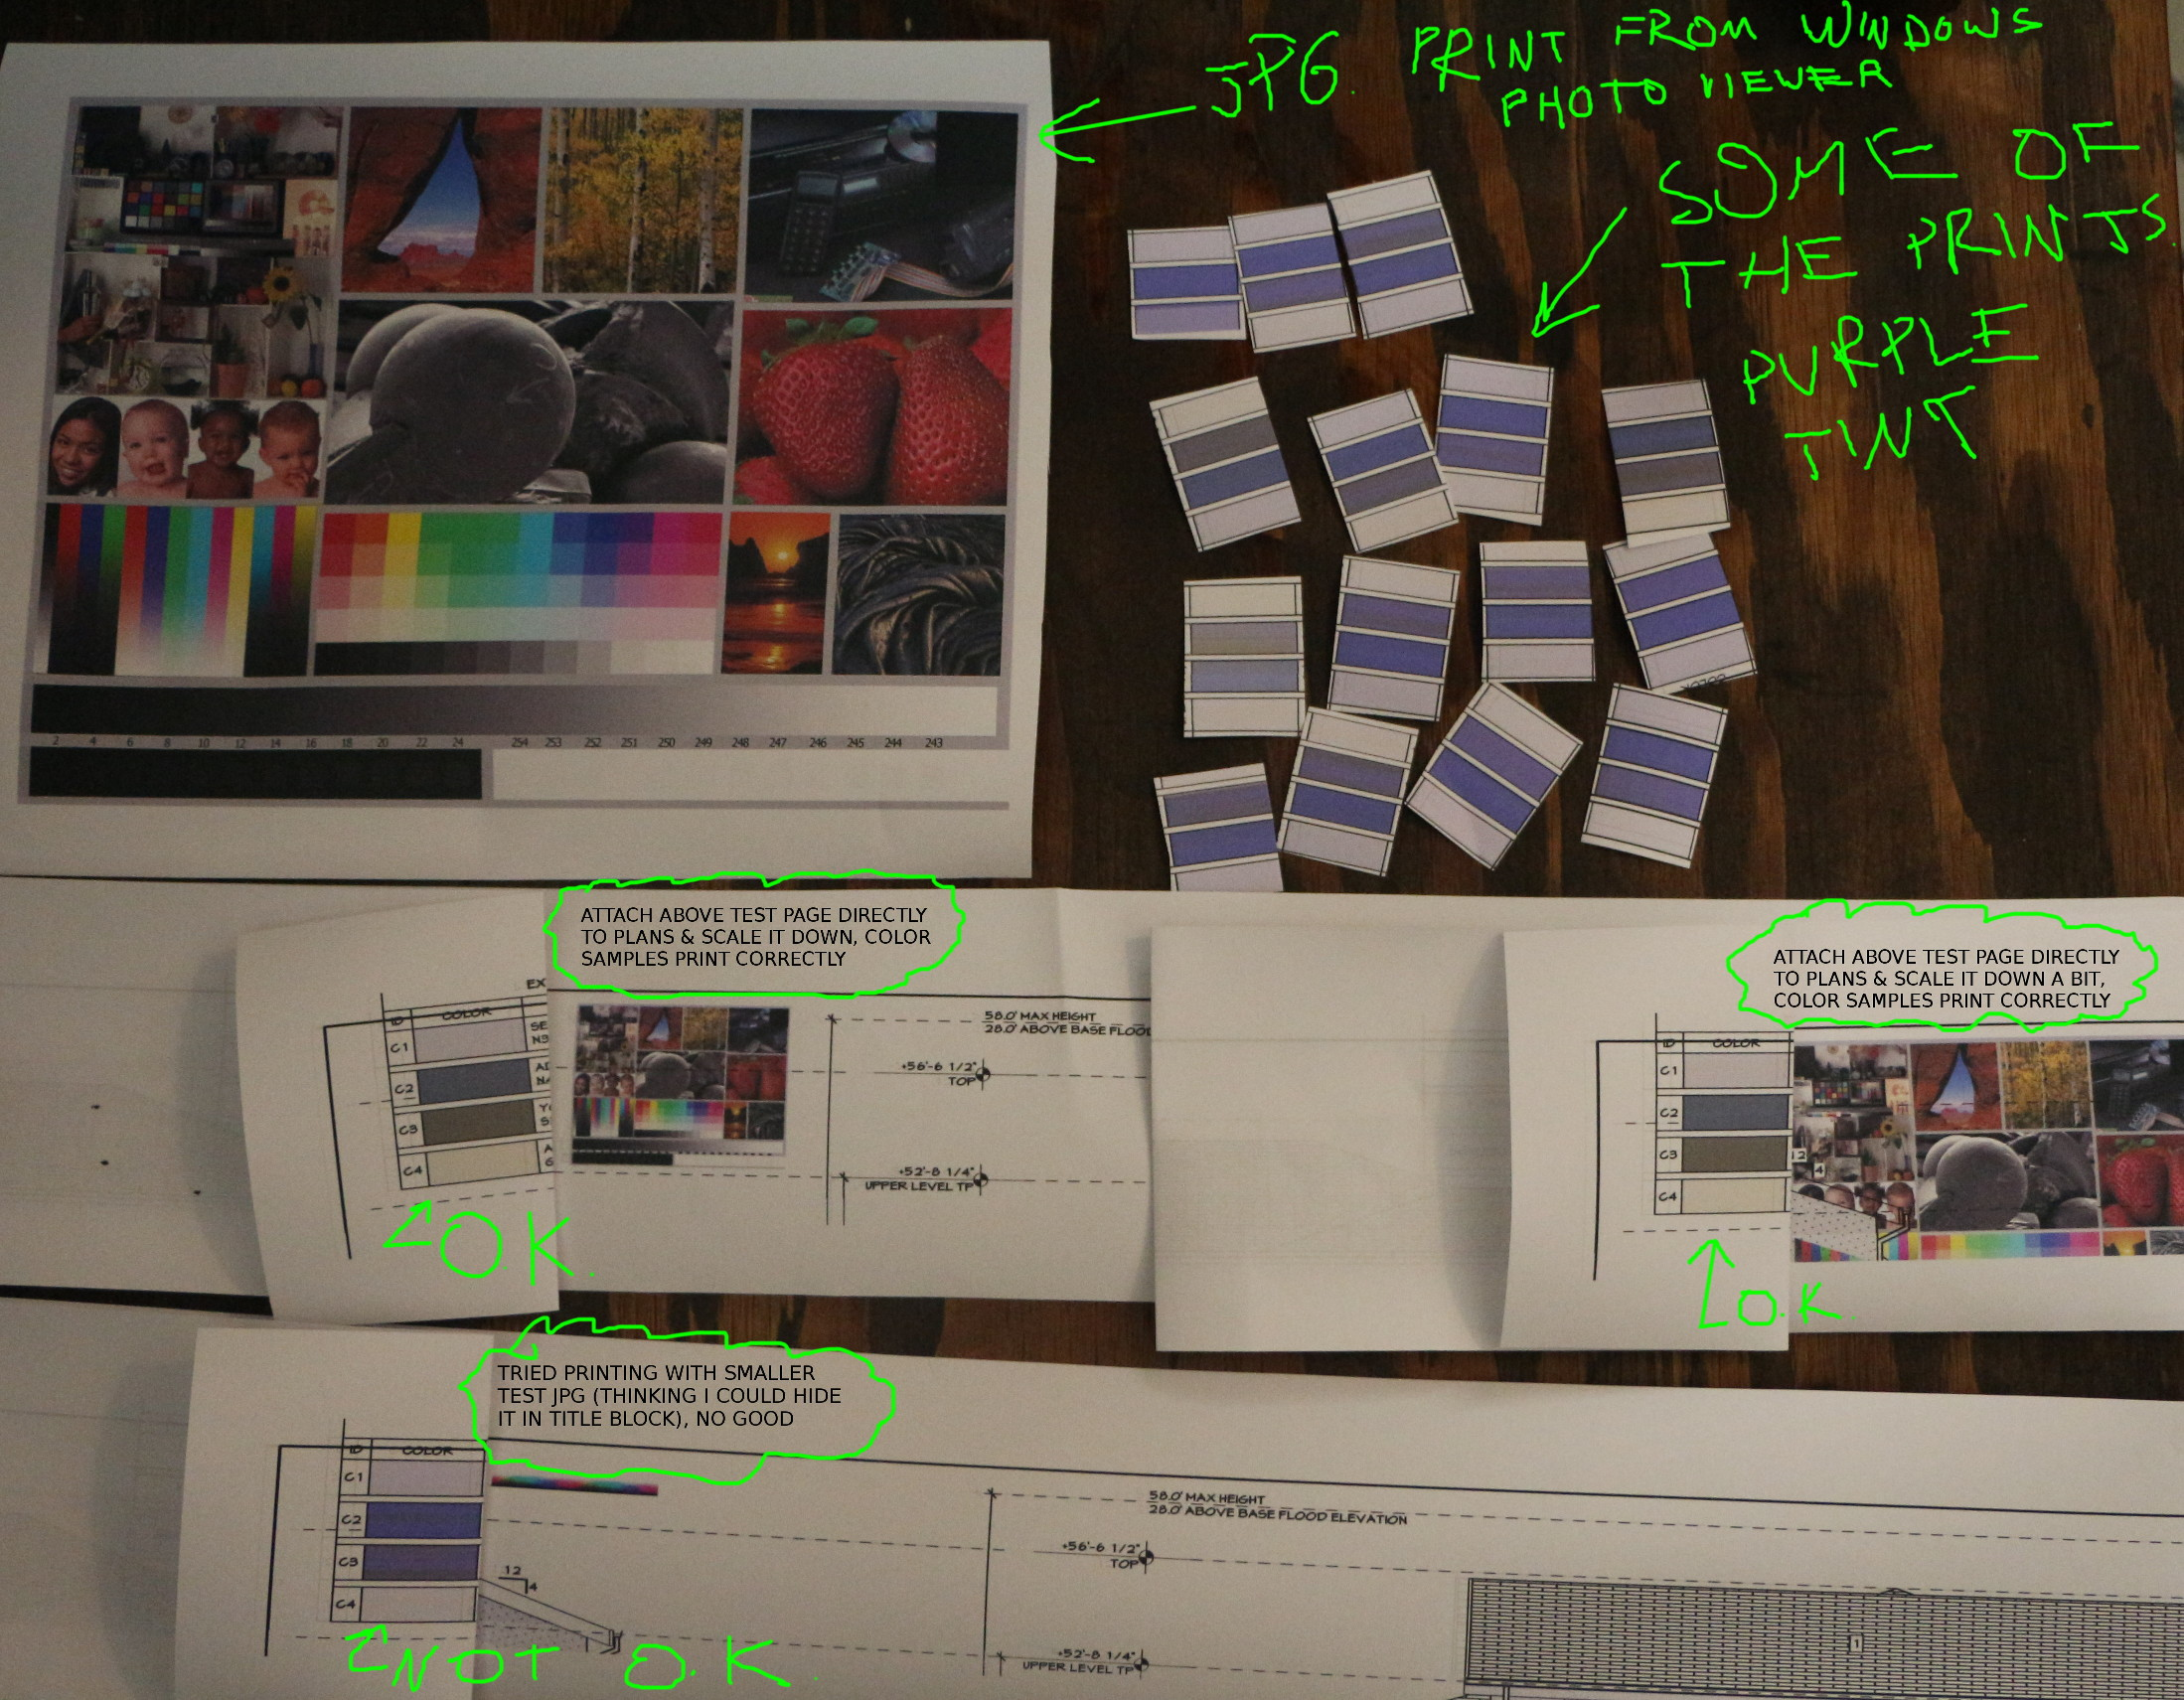 Hp Color Plotter Test Page Samples